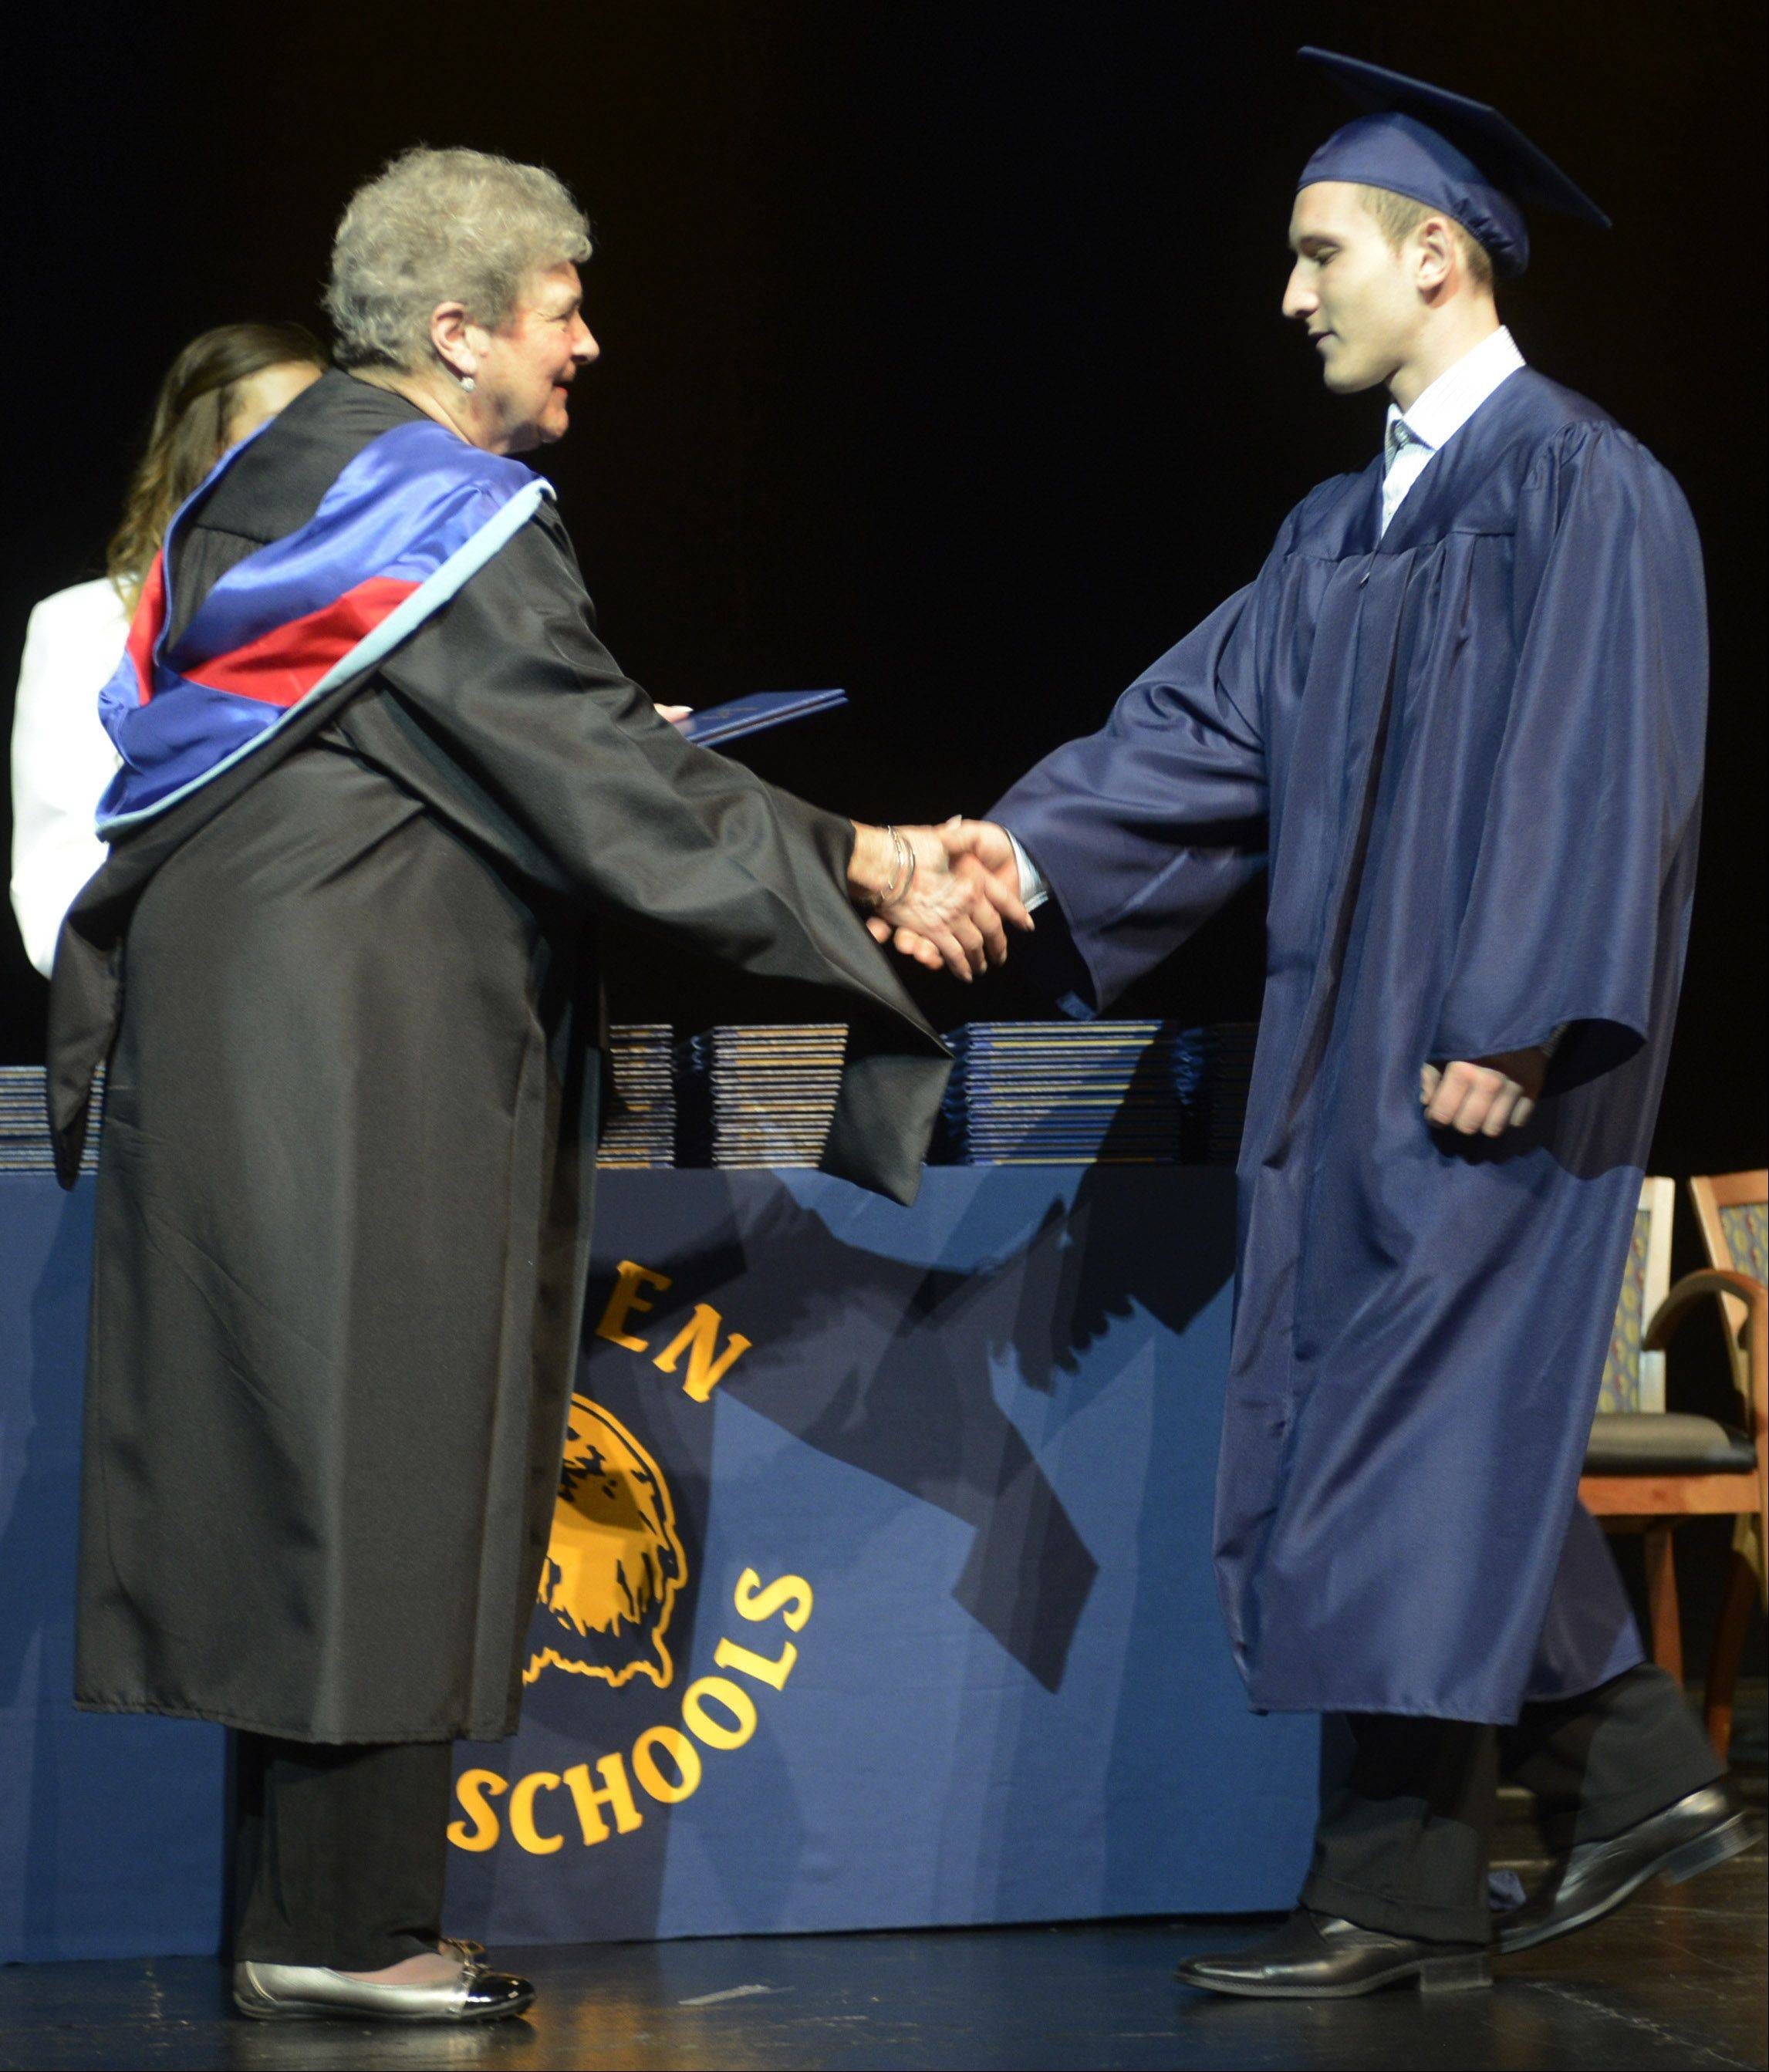 Images from the East Leyden High School graduation on Tuesday, May 21, at the Rosemont Theatre.